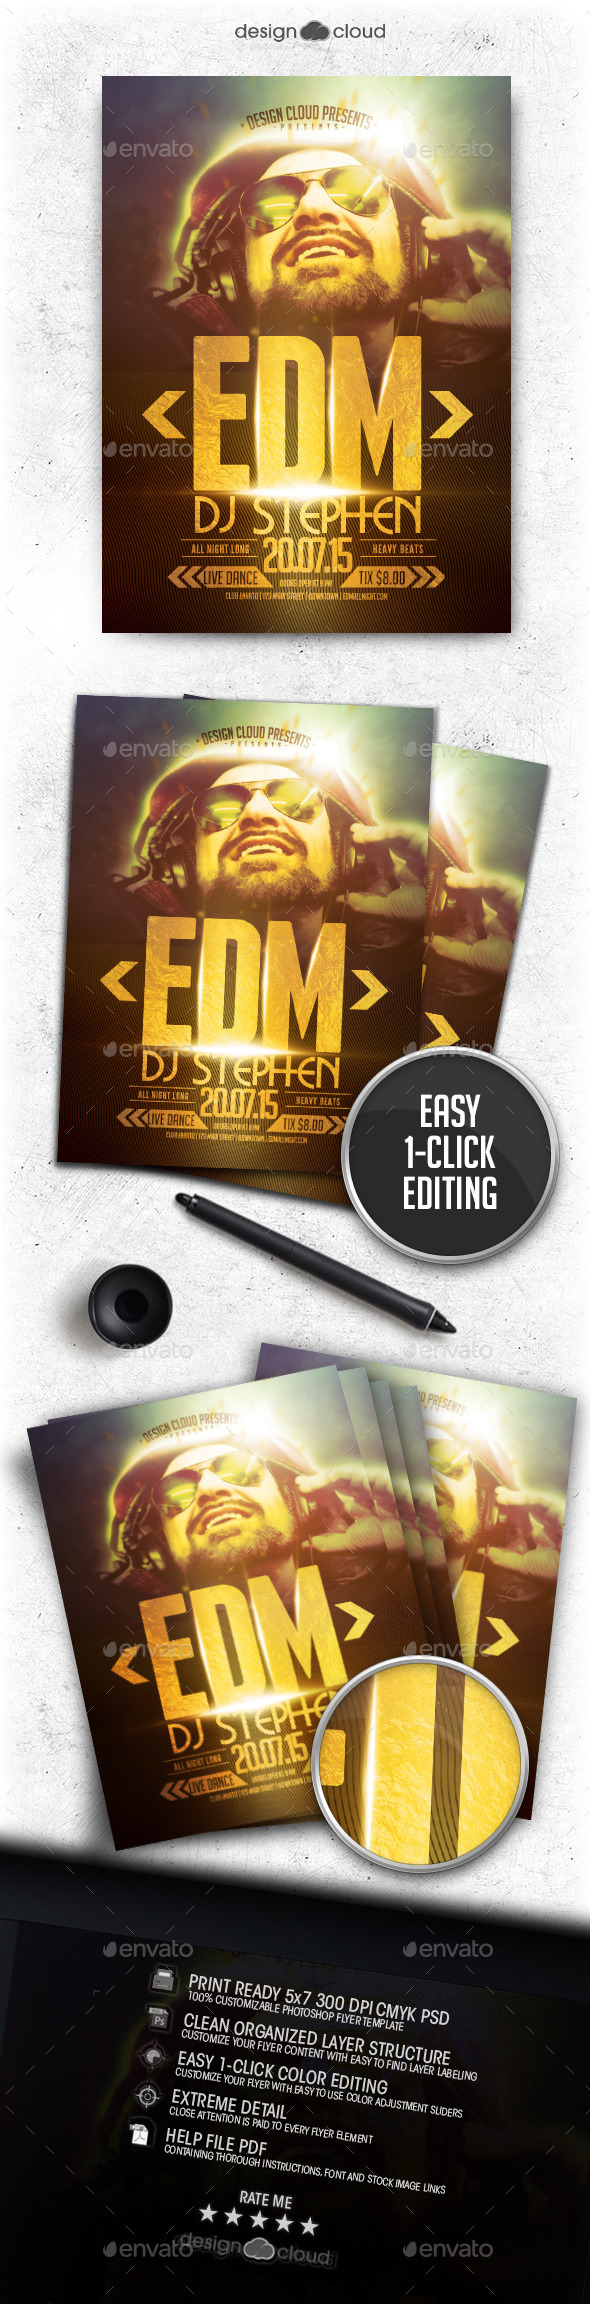 DJ Vol 1 Flyer Template - Clubs & Parties Events